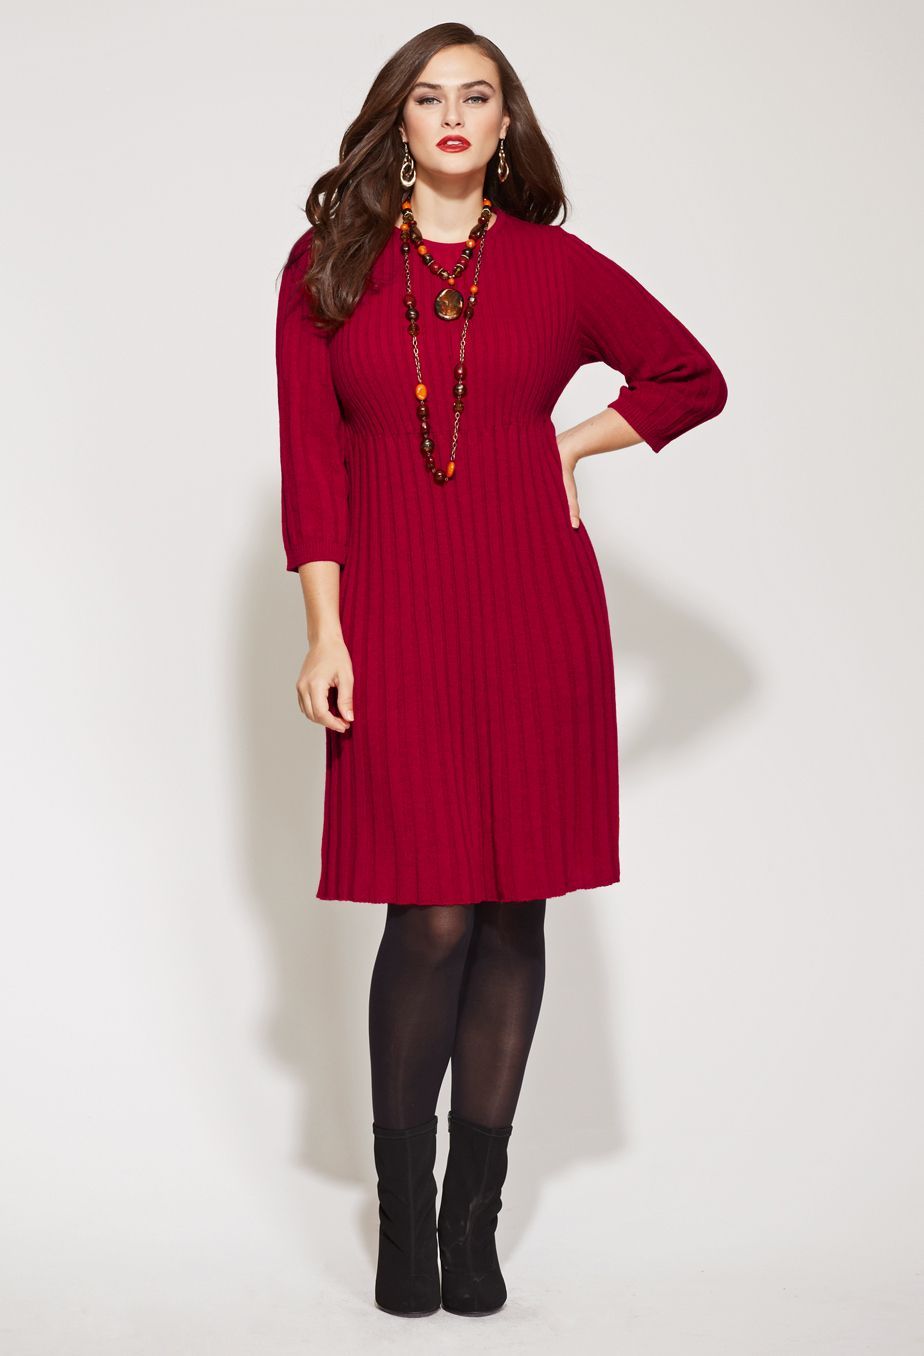 Plus Size Sweater Dresses For Cheap Dress Images